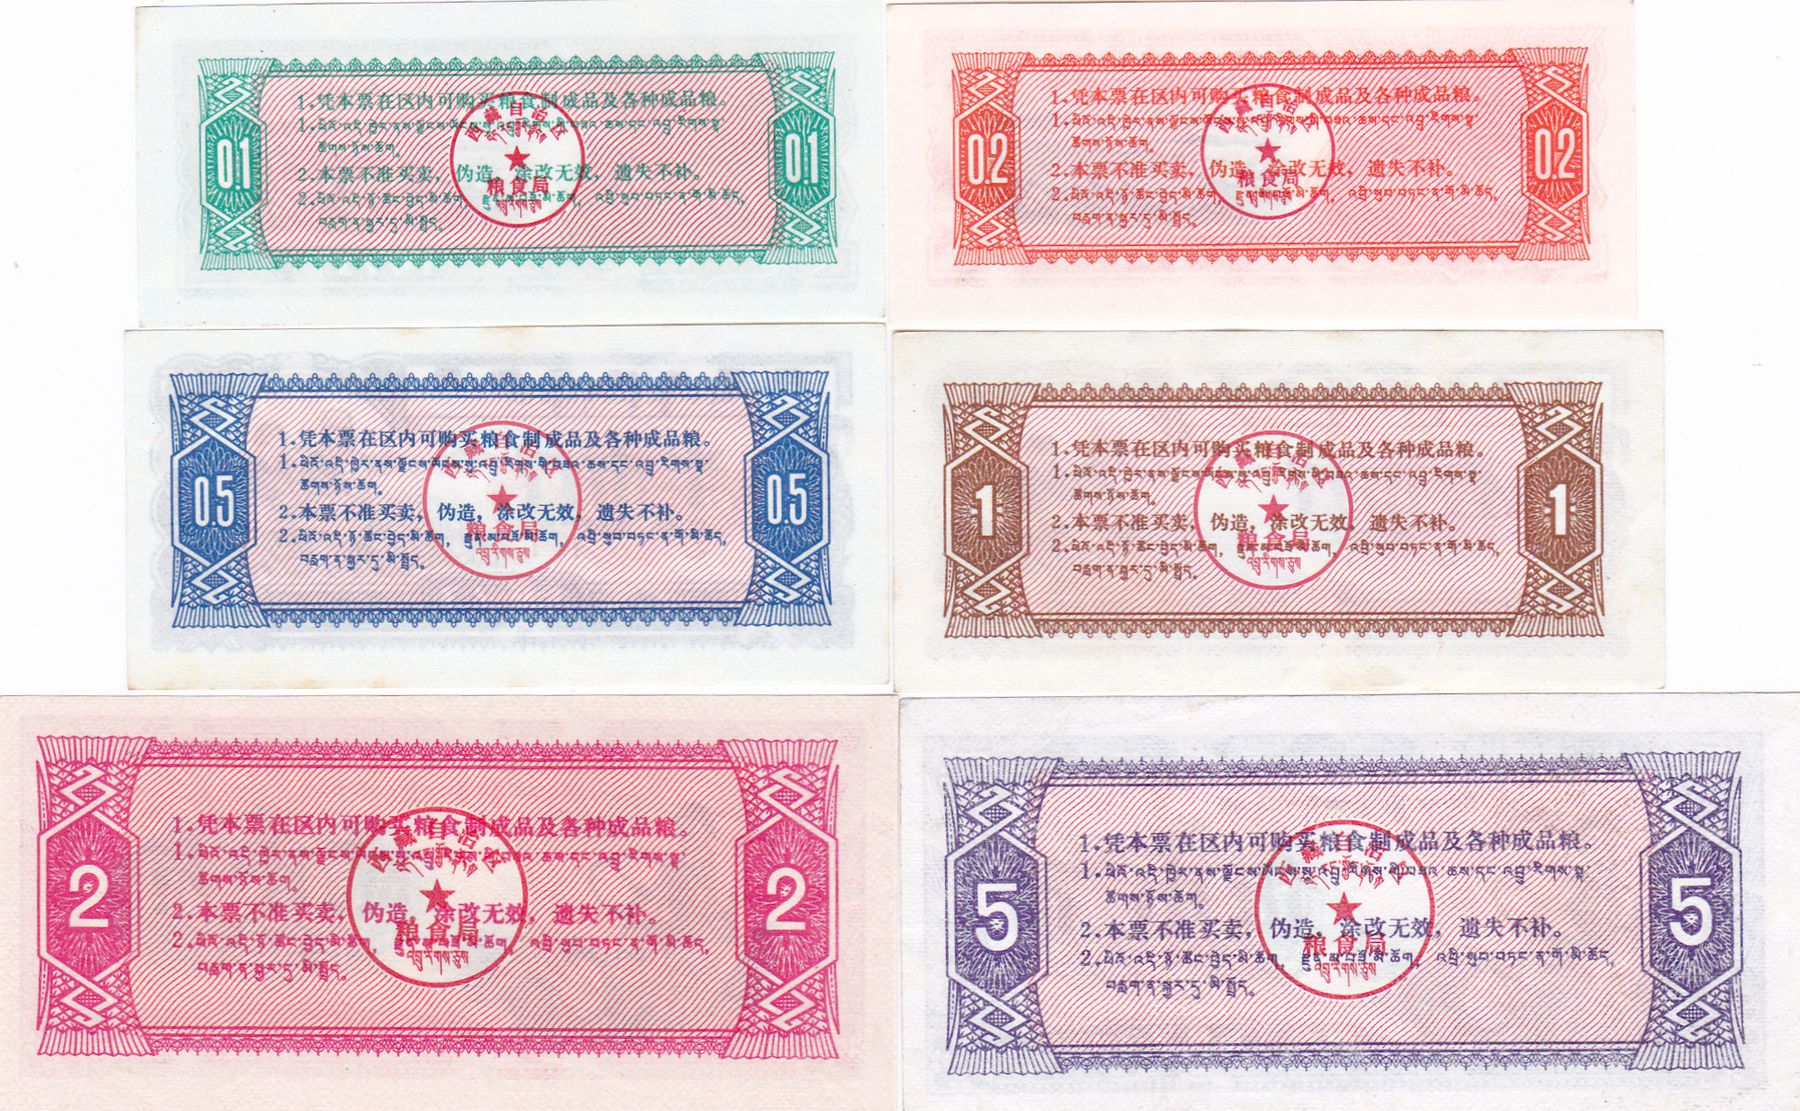 H7025, Tibet Food Ration Coupons, 6 Pcs, 1973 Issue Scarce